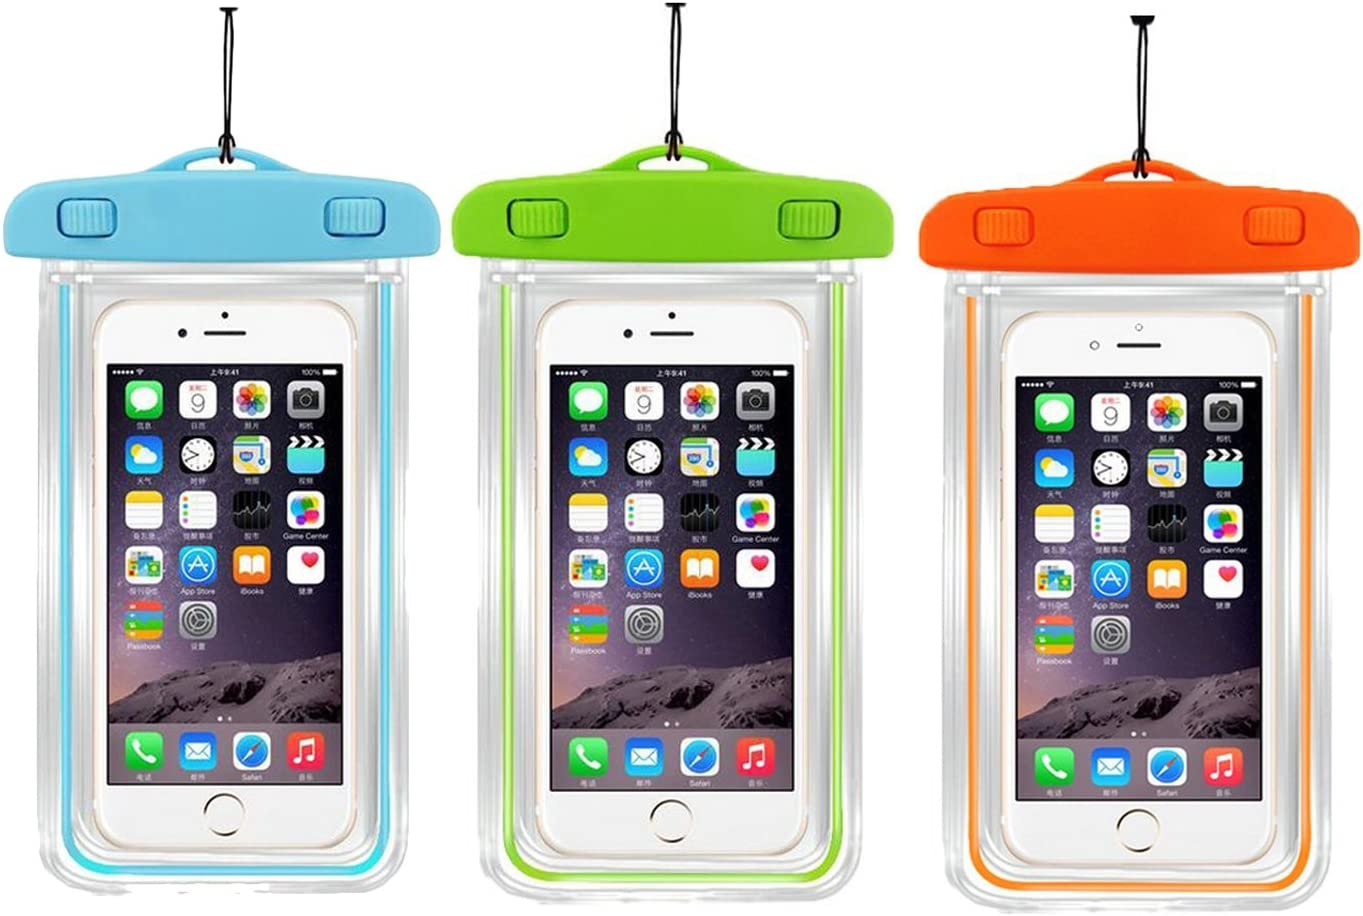 [3Ppack] Waterproof Case Universal Cellphone Dry Bag Pouch CaseHQ for Apple iPhone 8,8plus,7,7plus 6S, 6, 6S Plus, SE, 5S, Samsung Galaxy s8,s8 Plus S7, S6 Note5, HTC LG Motorola up to 5.8